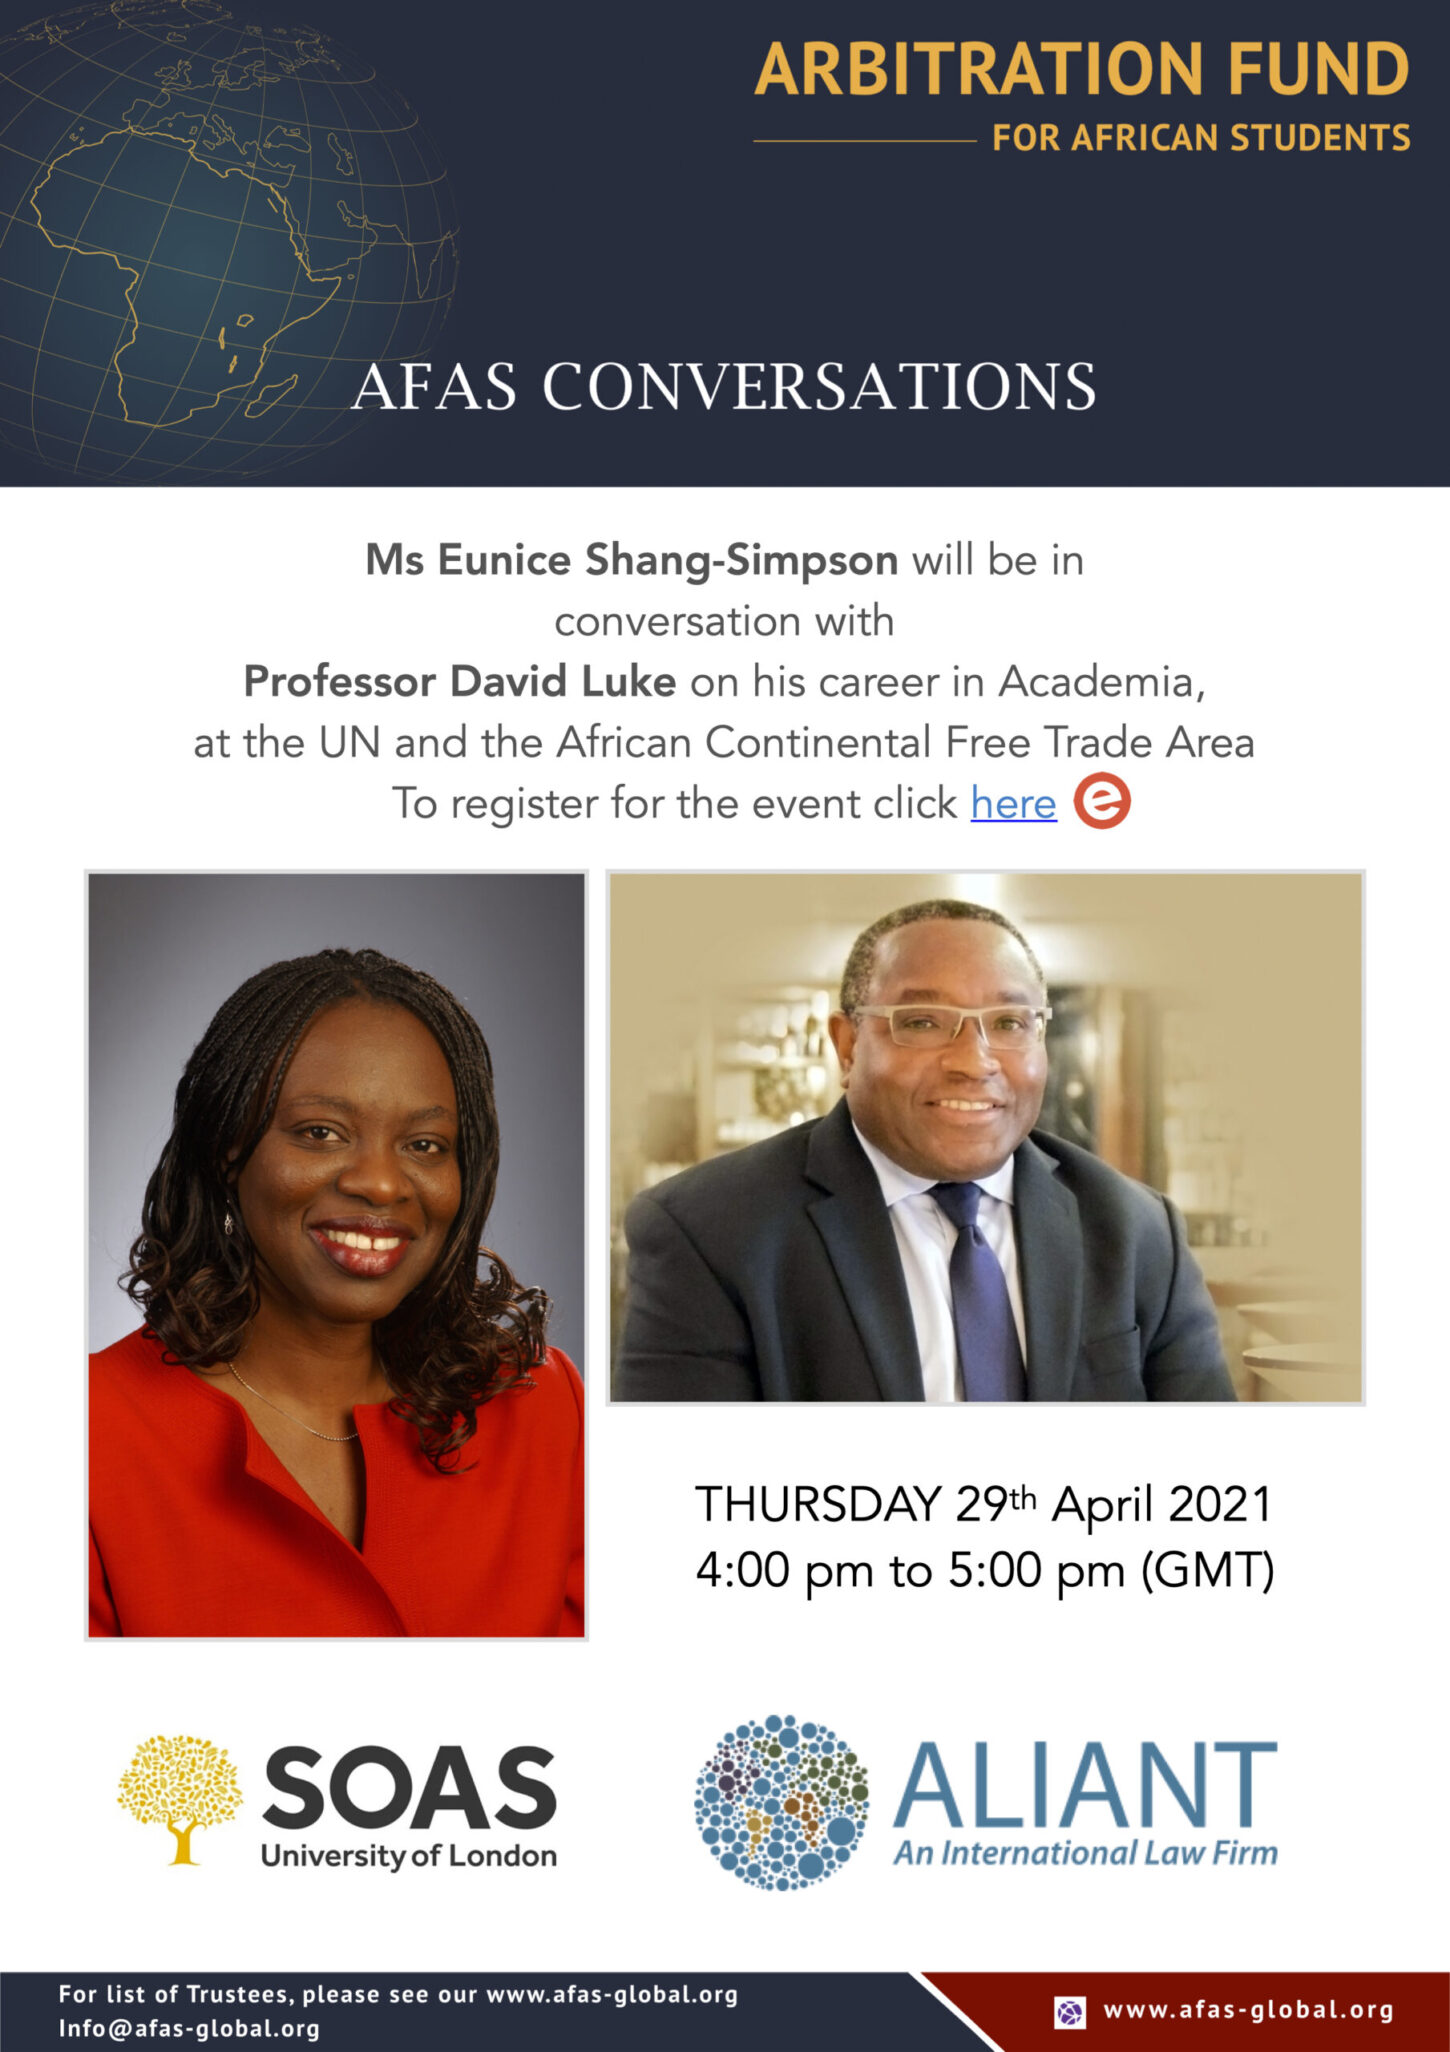 Ms Eunice Shang-Simpson will be in conversation with Professor David Luke